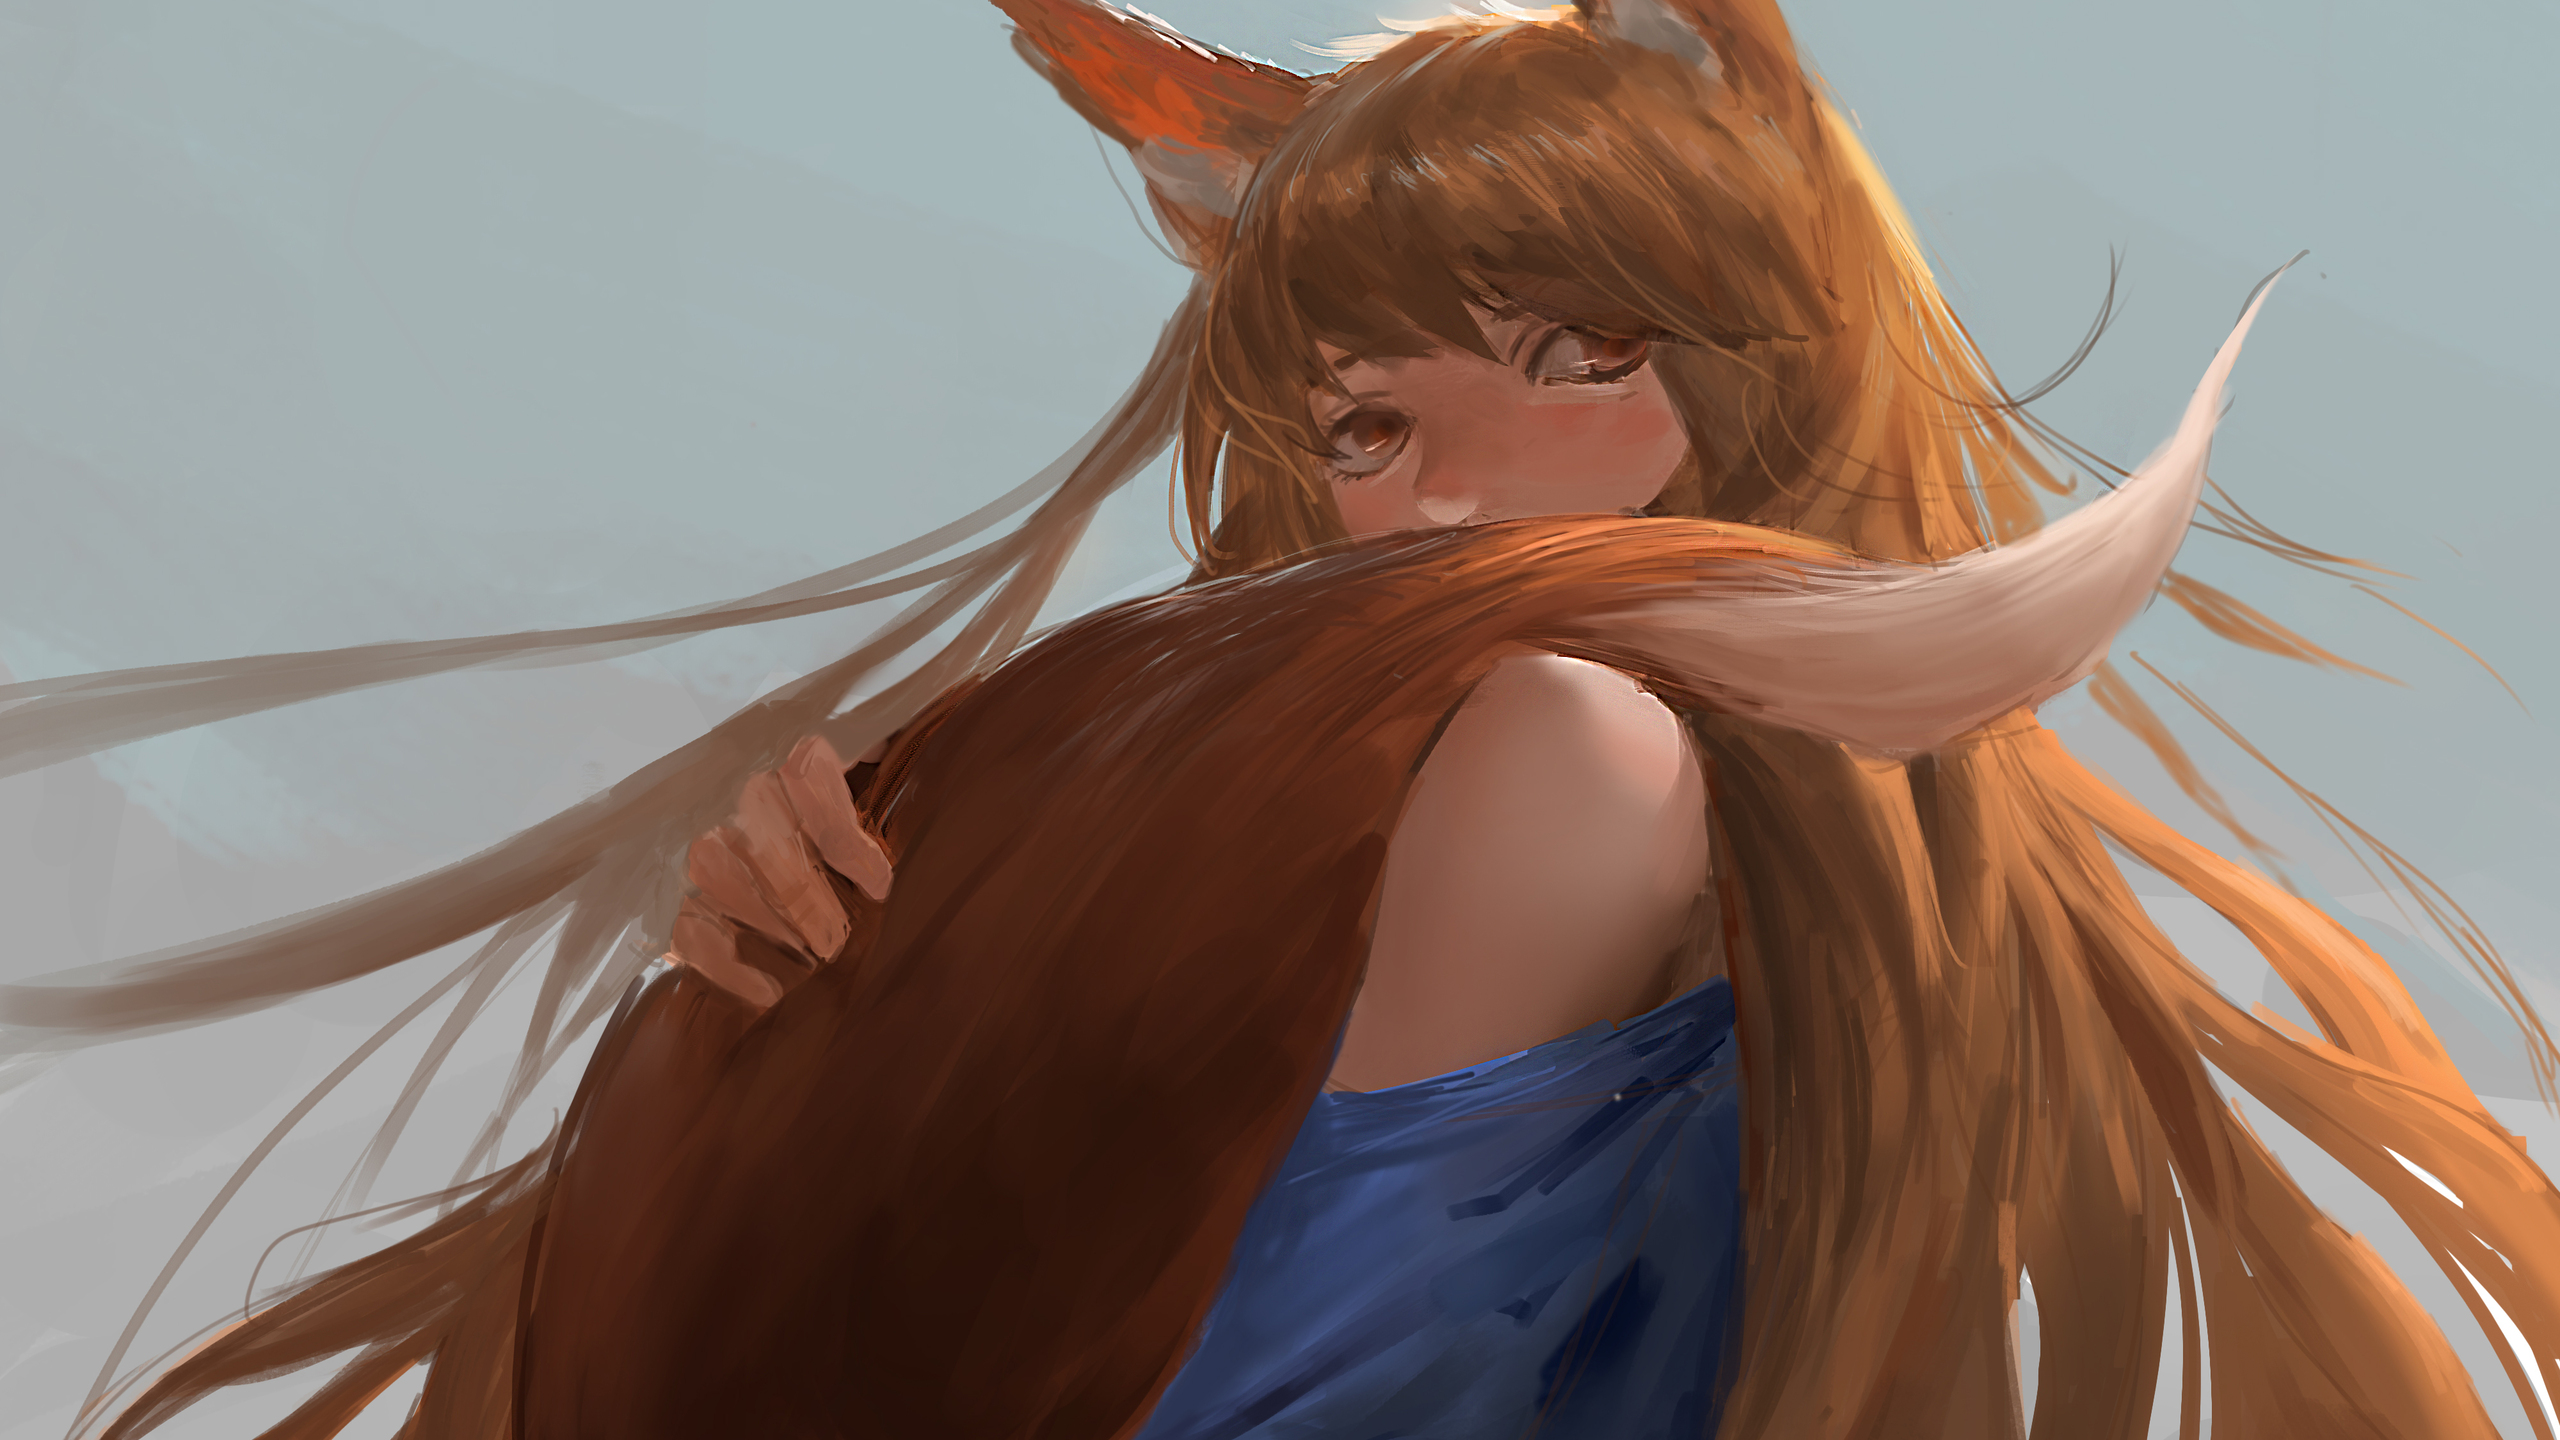 2560x1440 Spice And Wolf Anime 4k 1440p Resolution Hd 4k